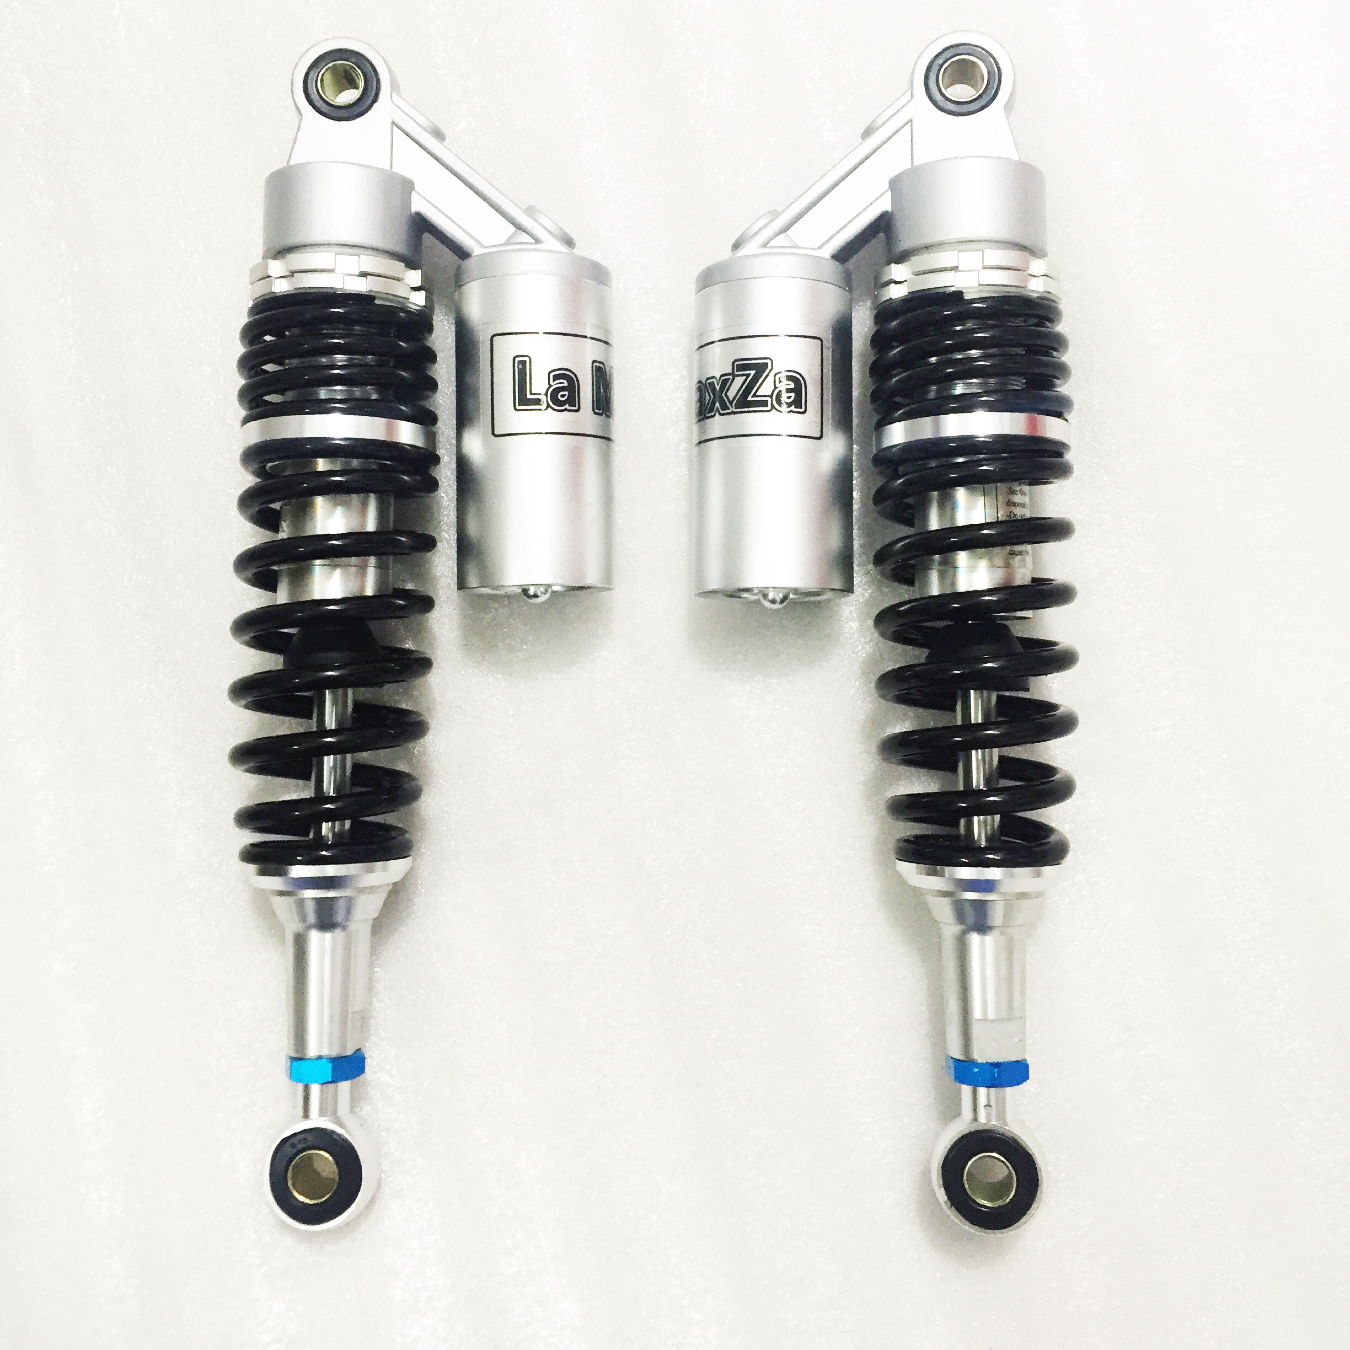 Universal 320mm 330mm Motorcycle Air Shock Absorber Rear Suspension For Honda Yamaha Suzuki Kawasaki Dirt bikes Gokart ATV